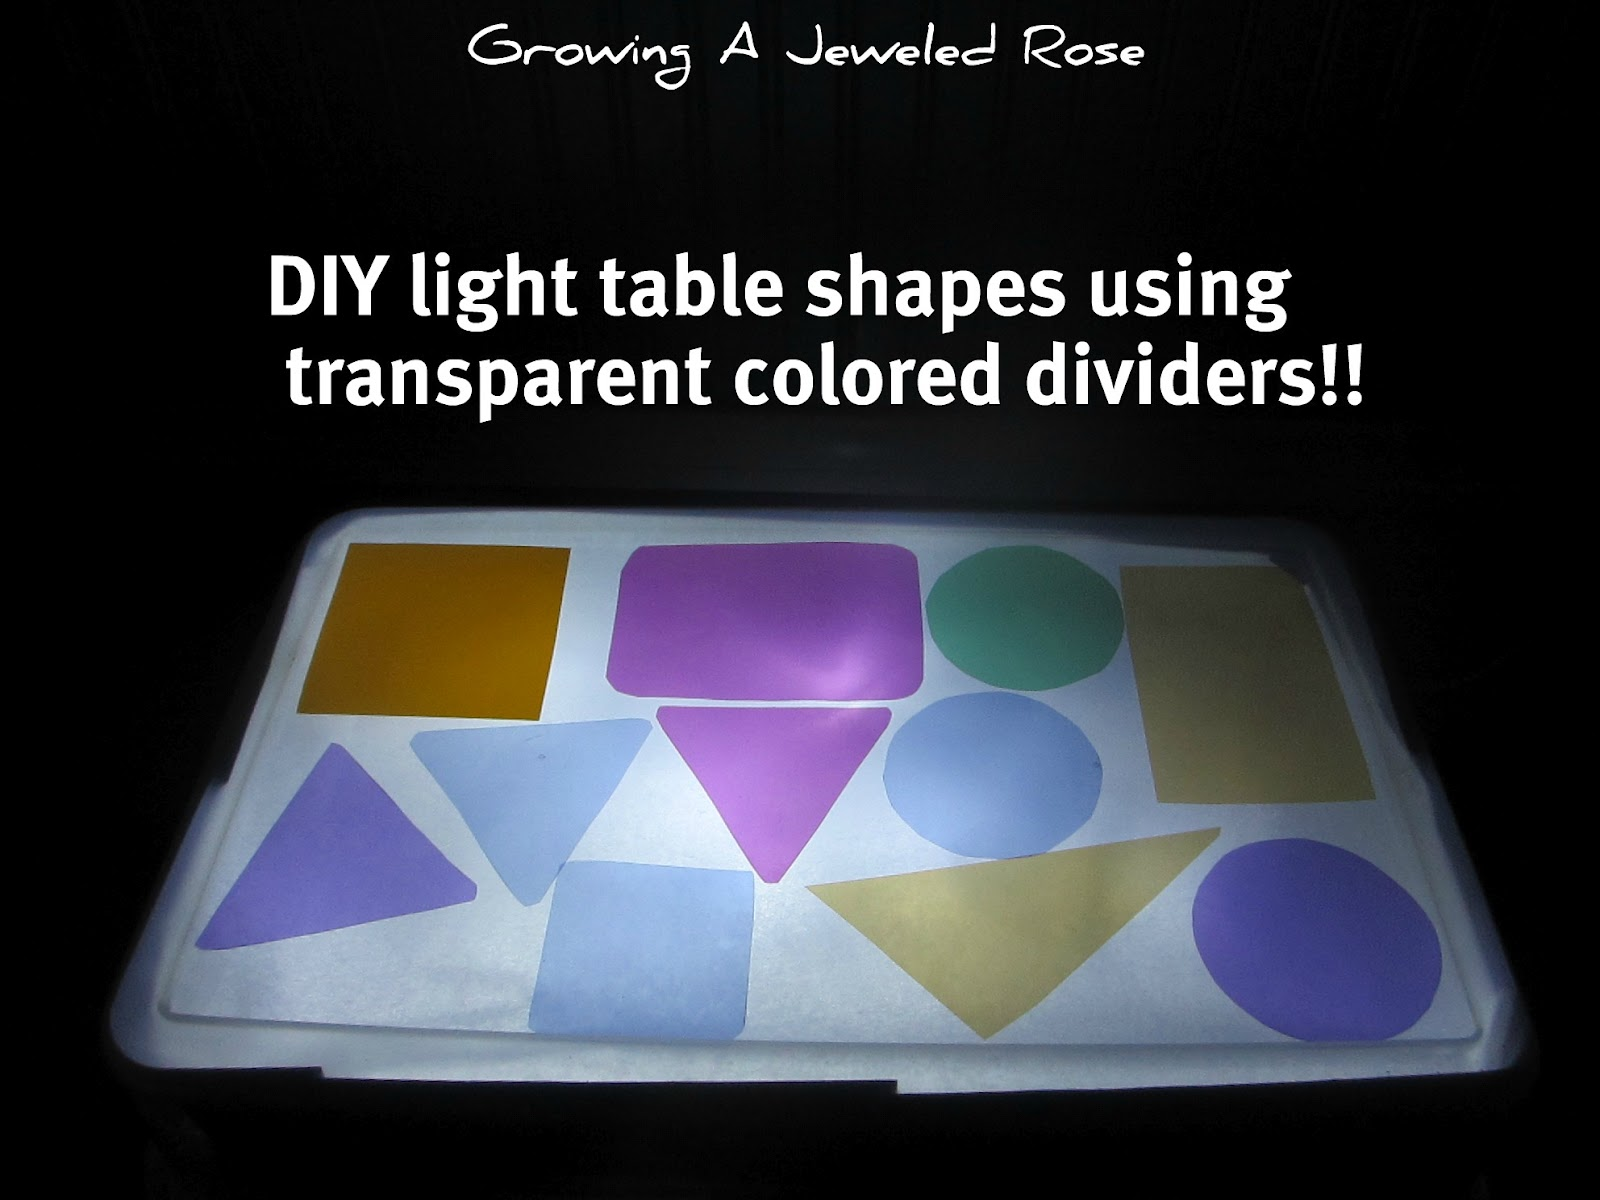 Do It Yourself Lighting: Do It Yourself Light Table & Shapes